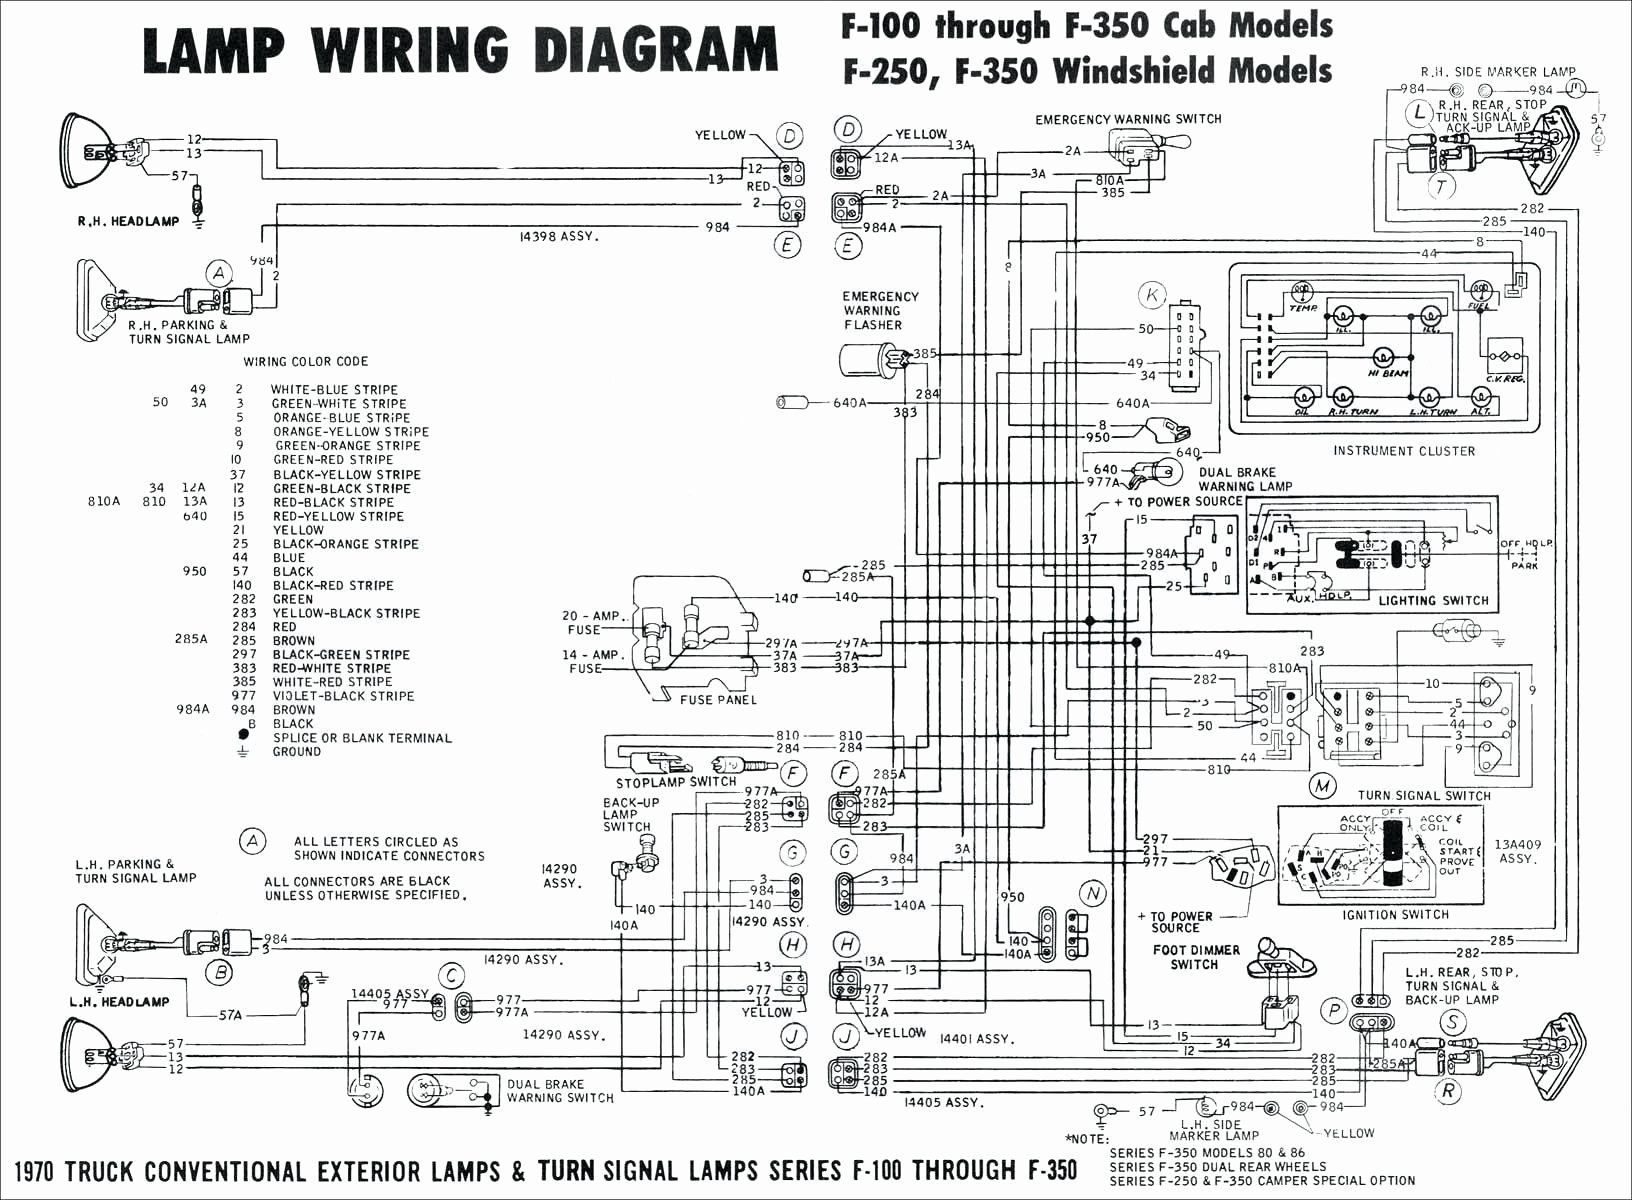 Light Bulb Drawing Book New 2001 Caravan Wiring Diagram Hazard In 2020 Electrical Wiring Diagram Diagram Trailer Wiring Diagram